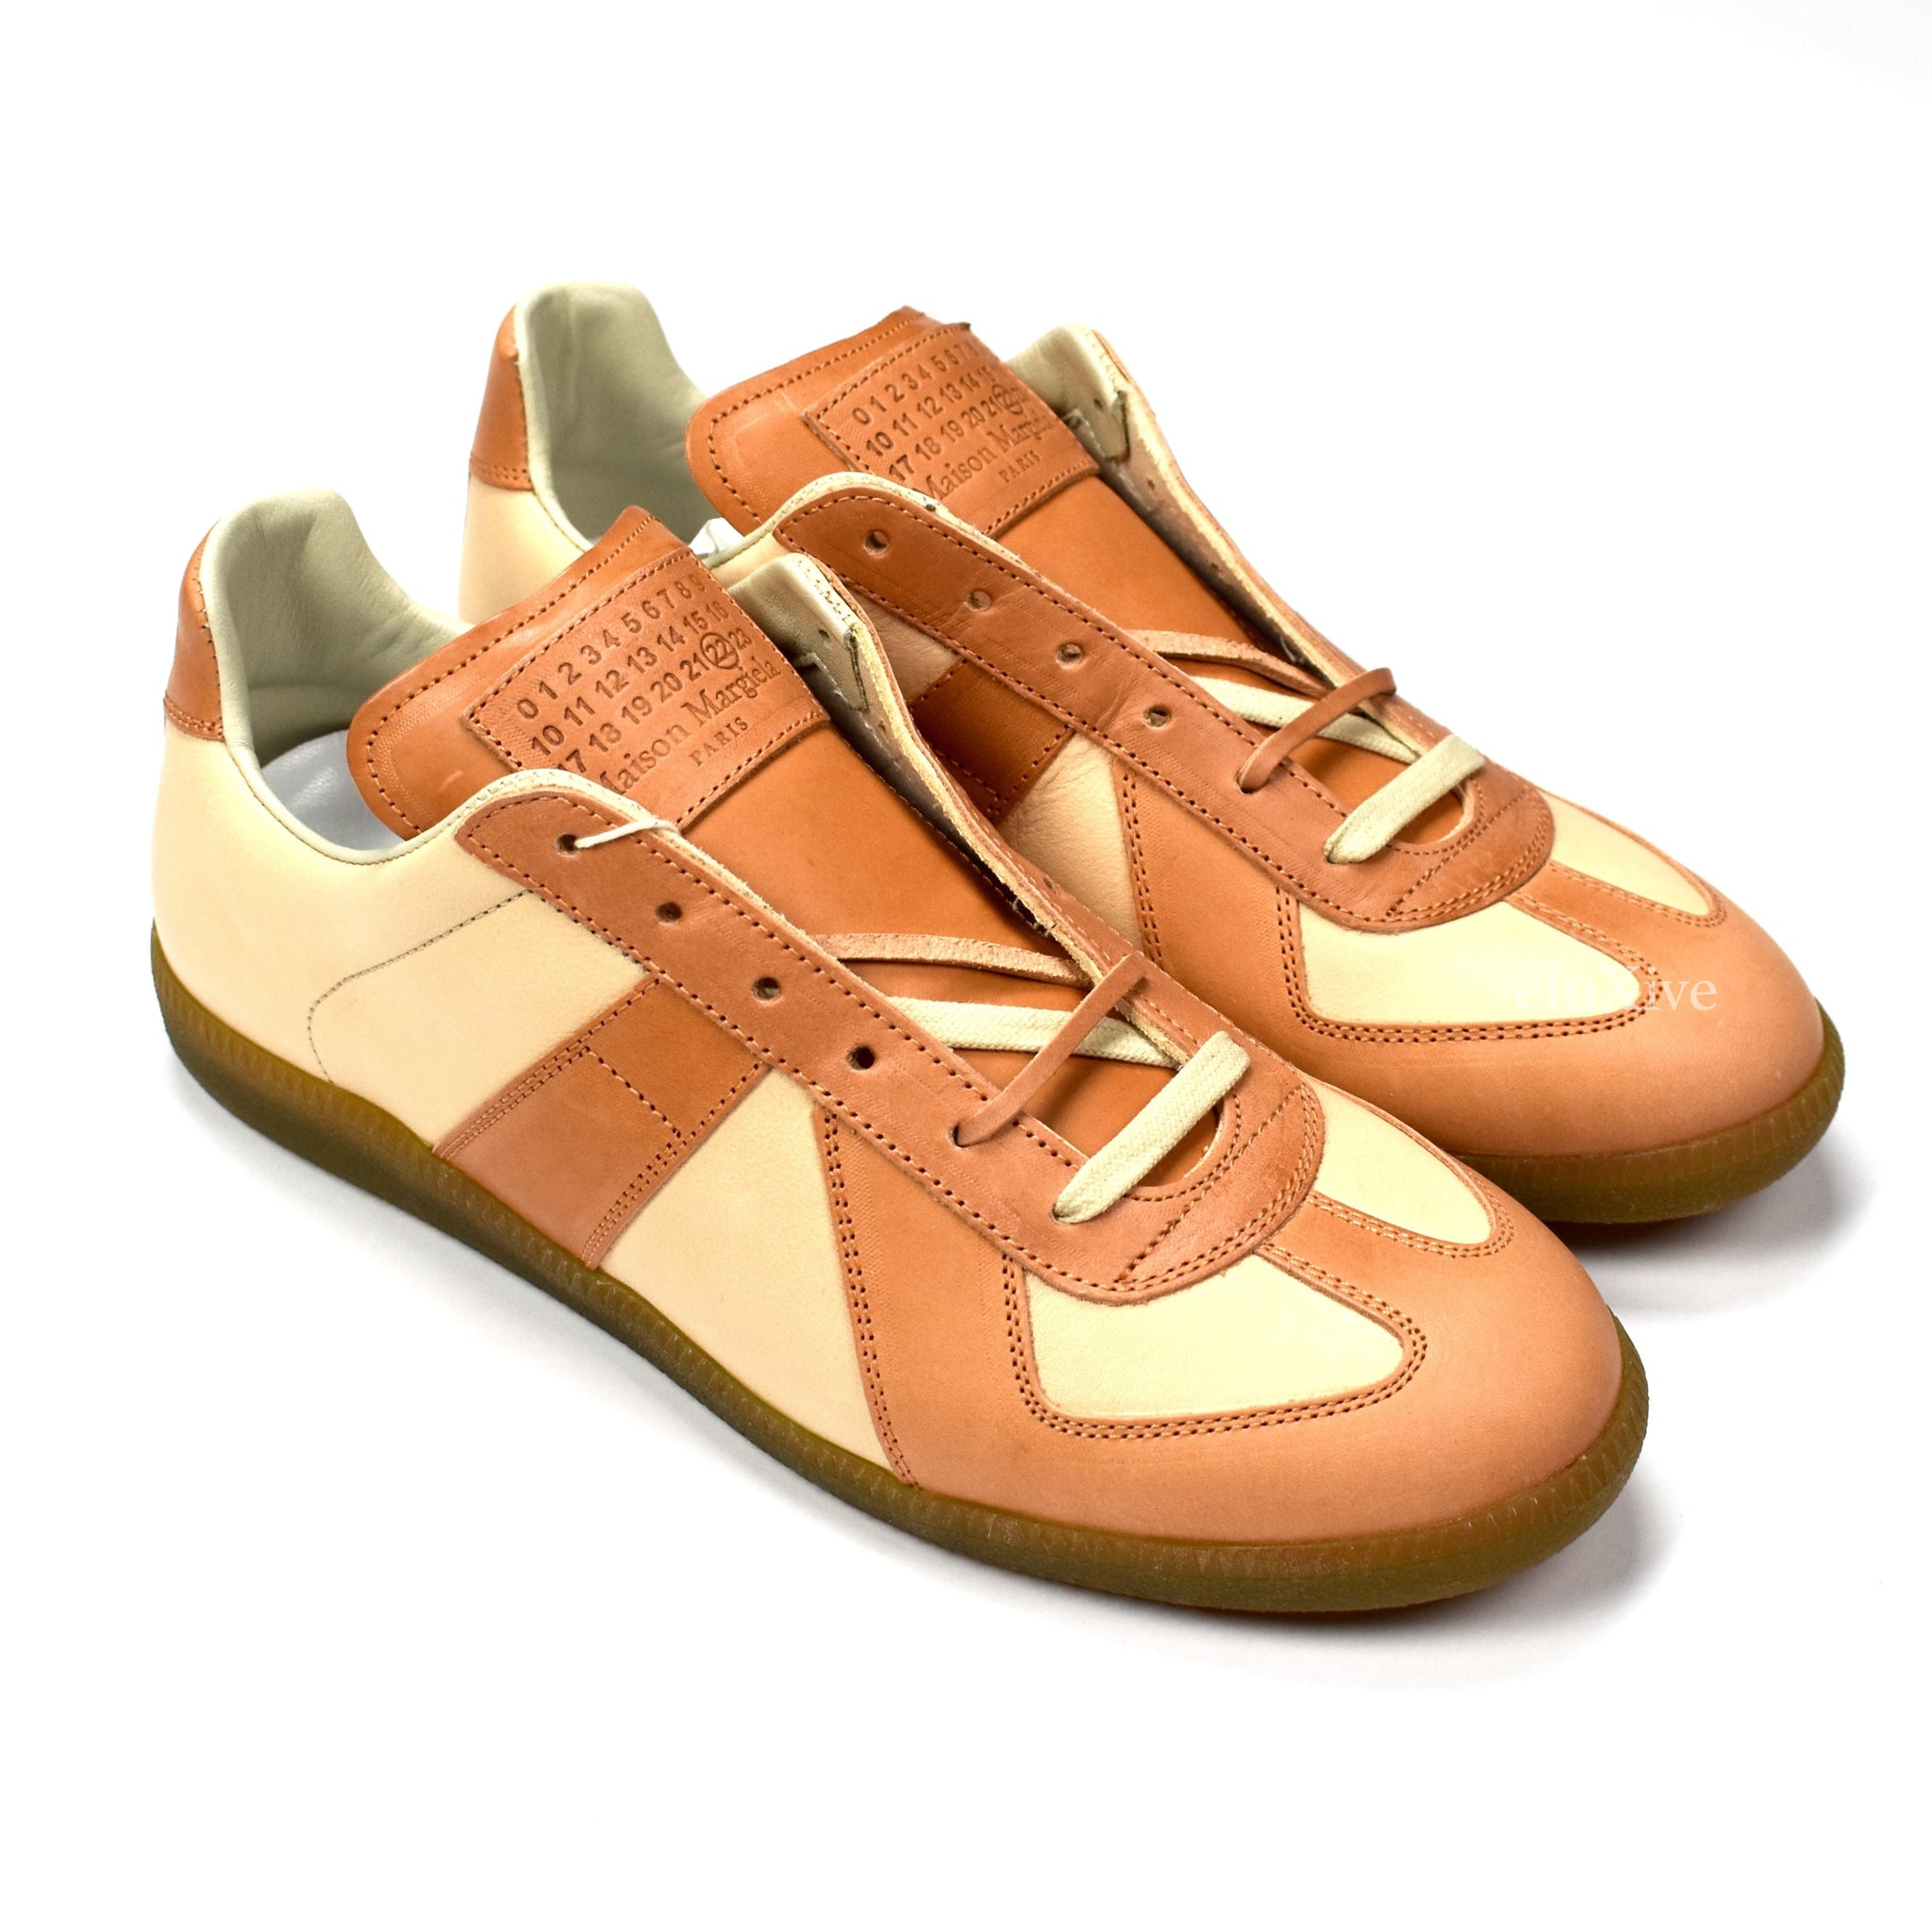 Maison Margiela - Tan Leather GAT Sneakers